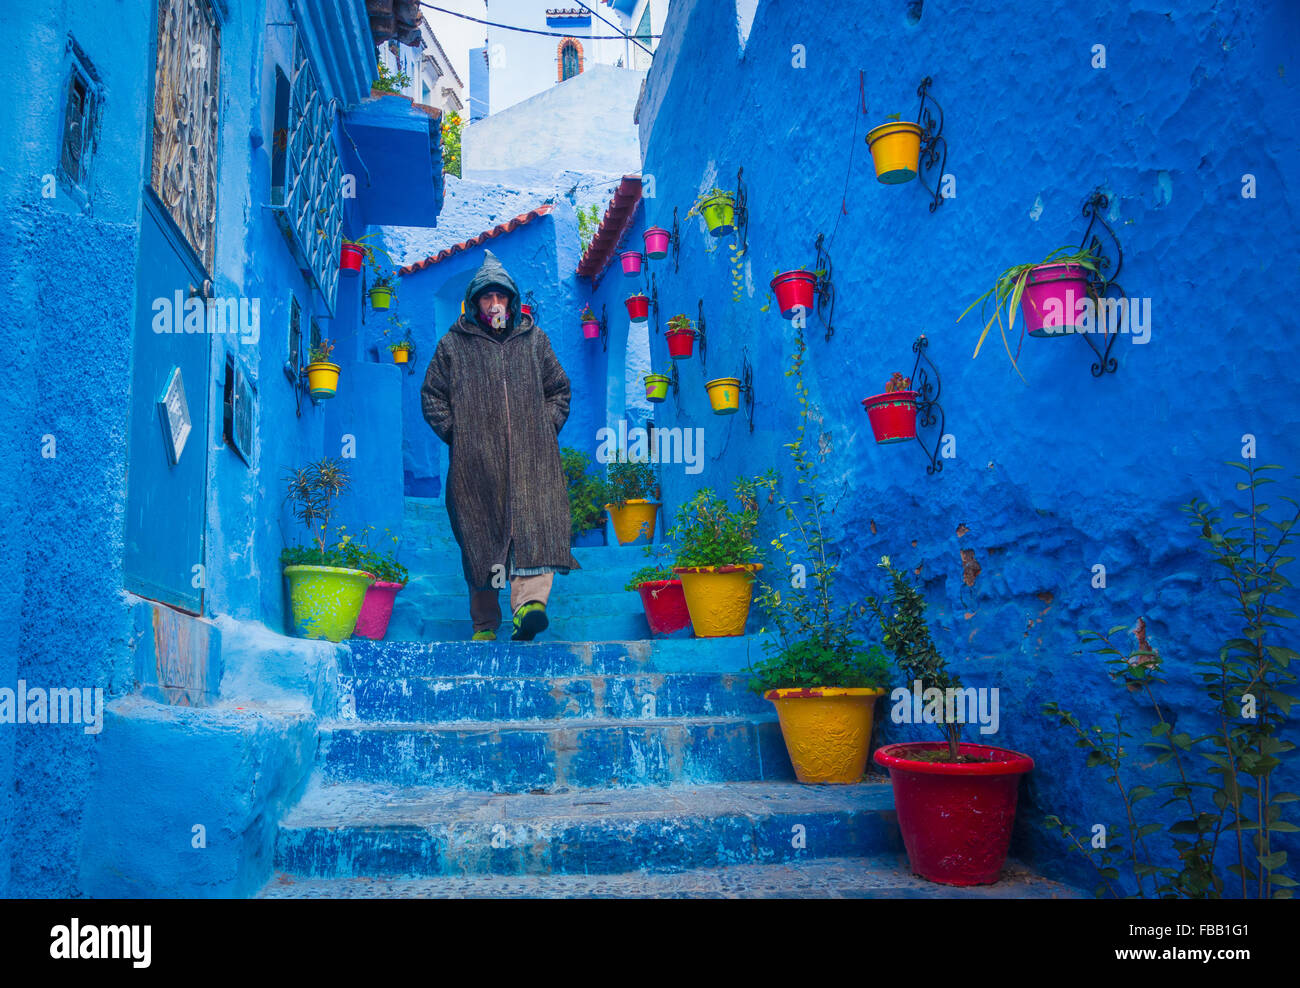 Chefchaouen flower pots, Morocco - Stock Image